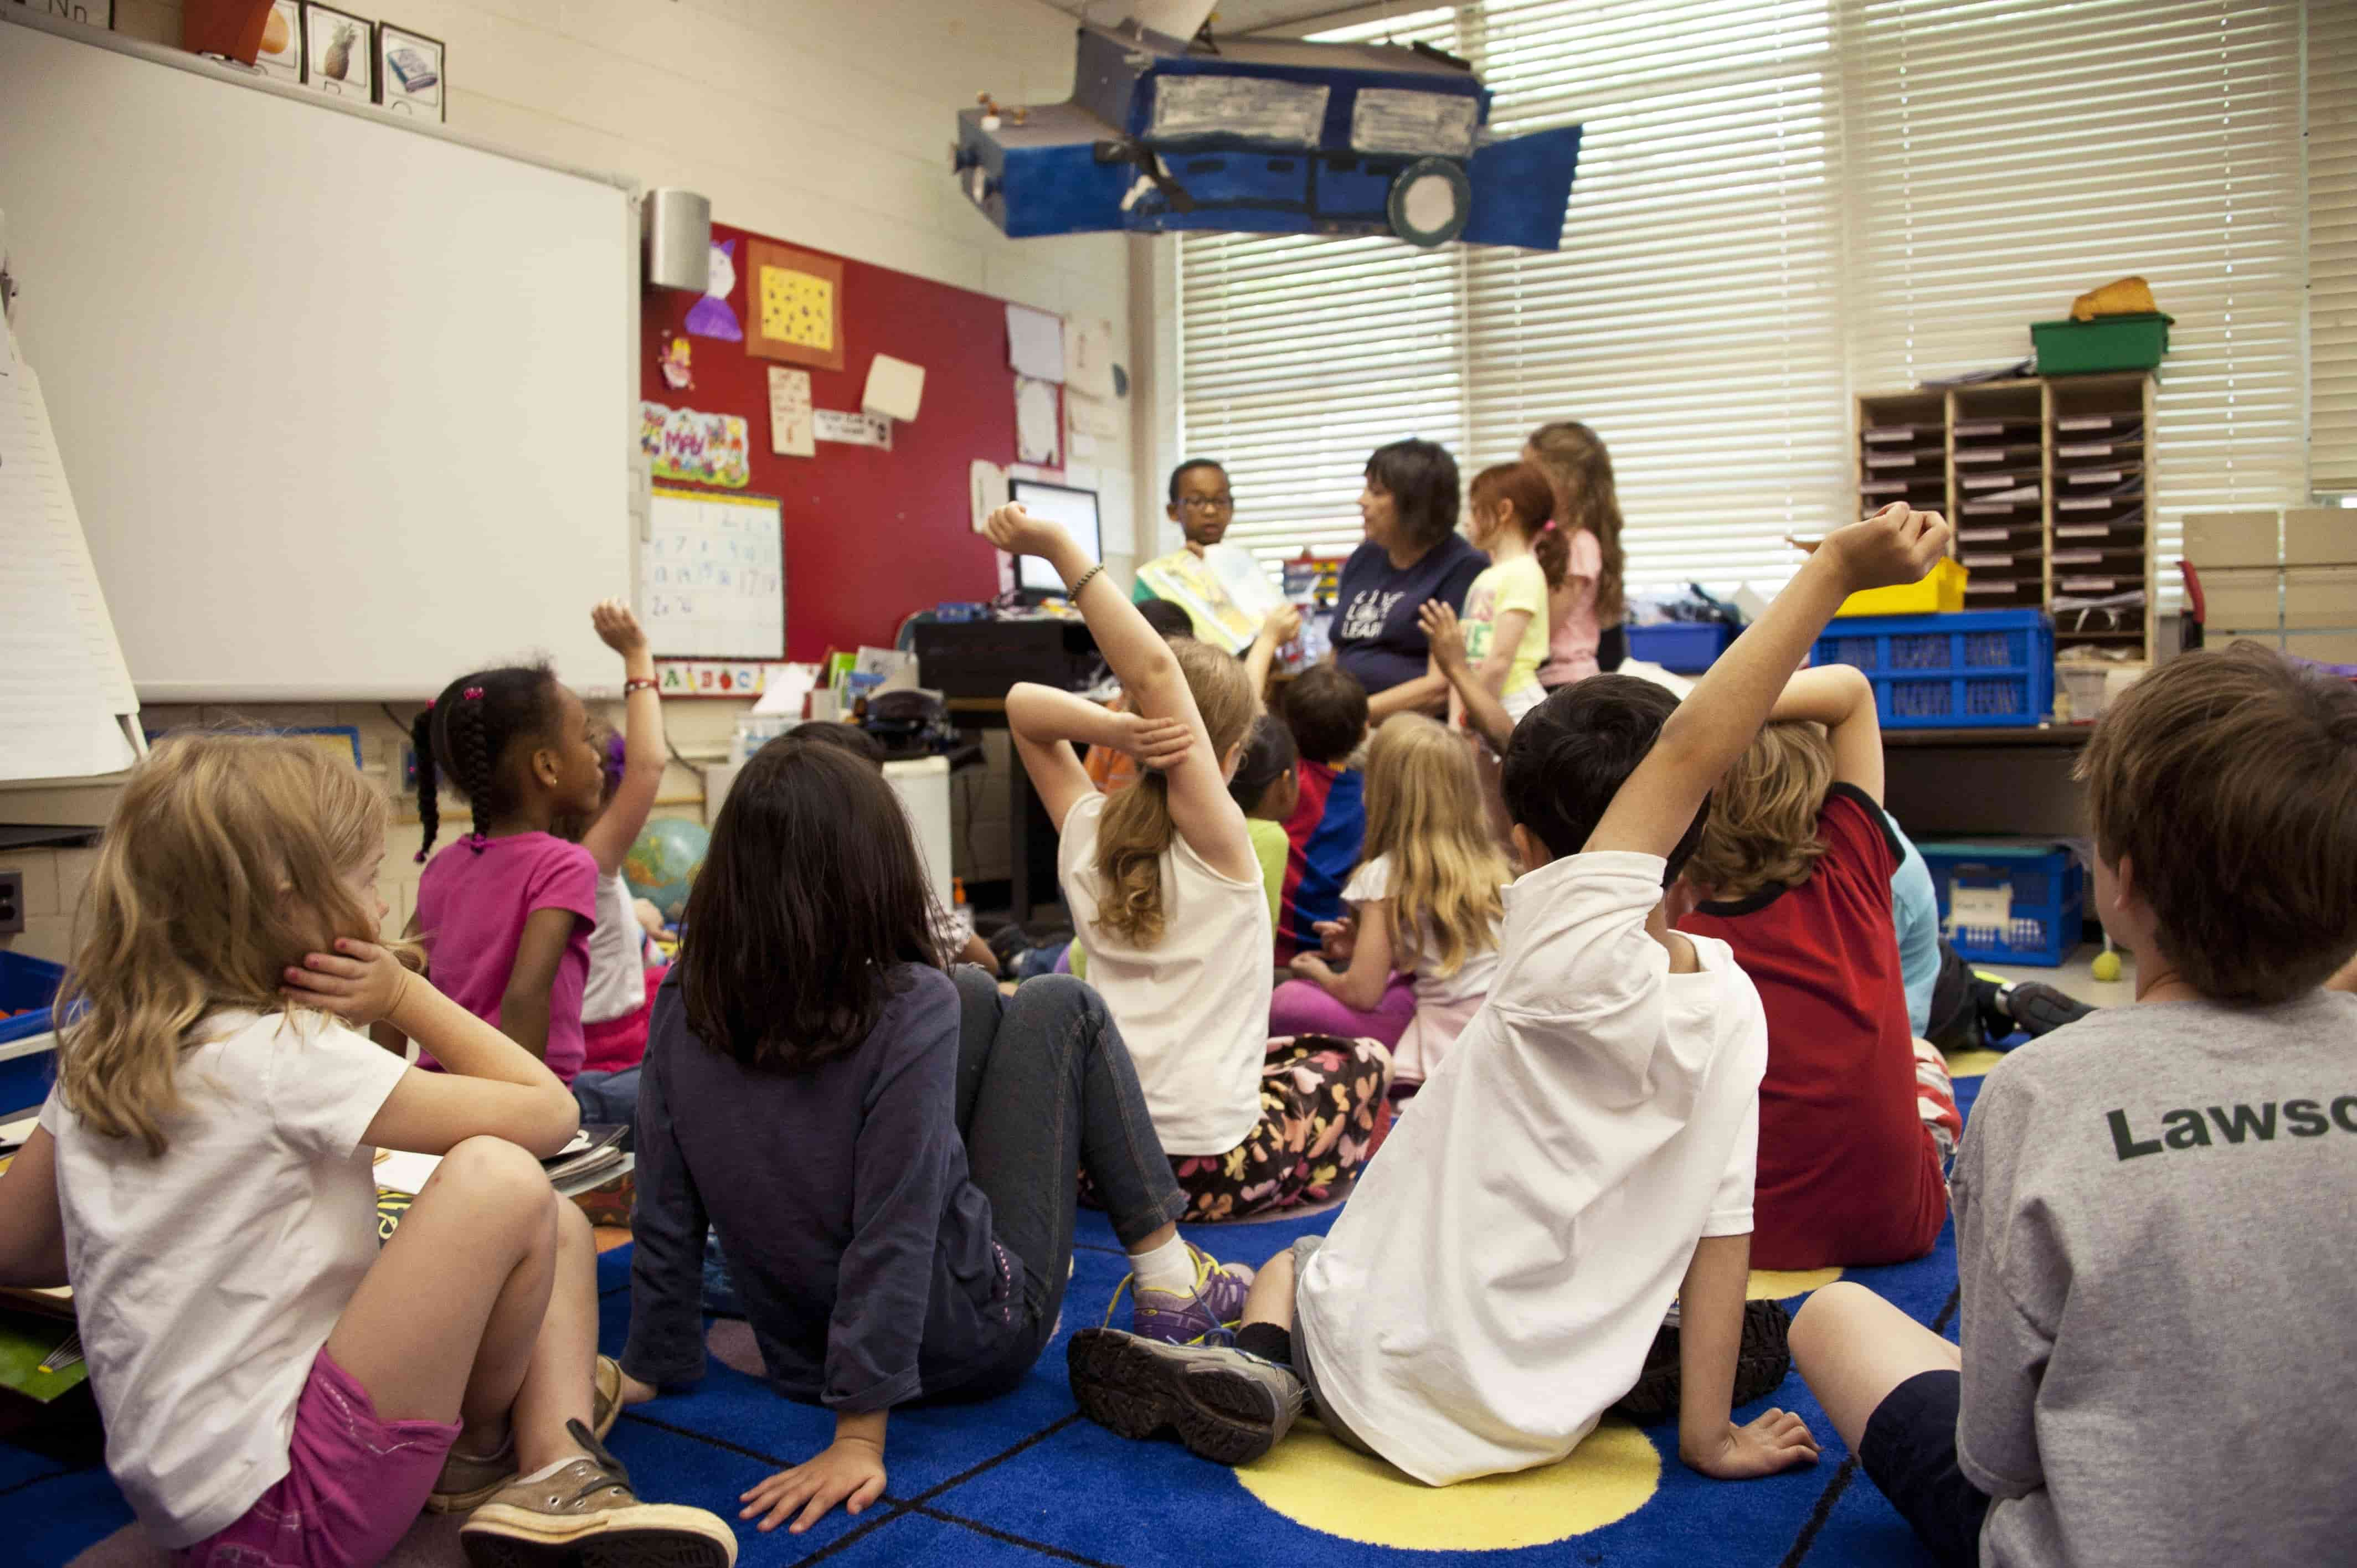 A teacher with her students in a classroom, interacting between each other